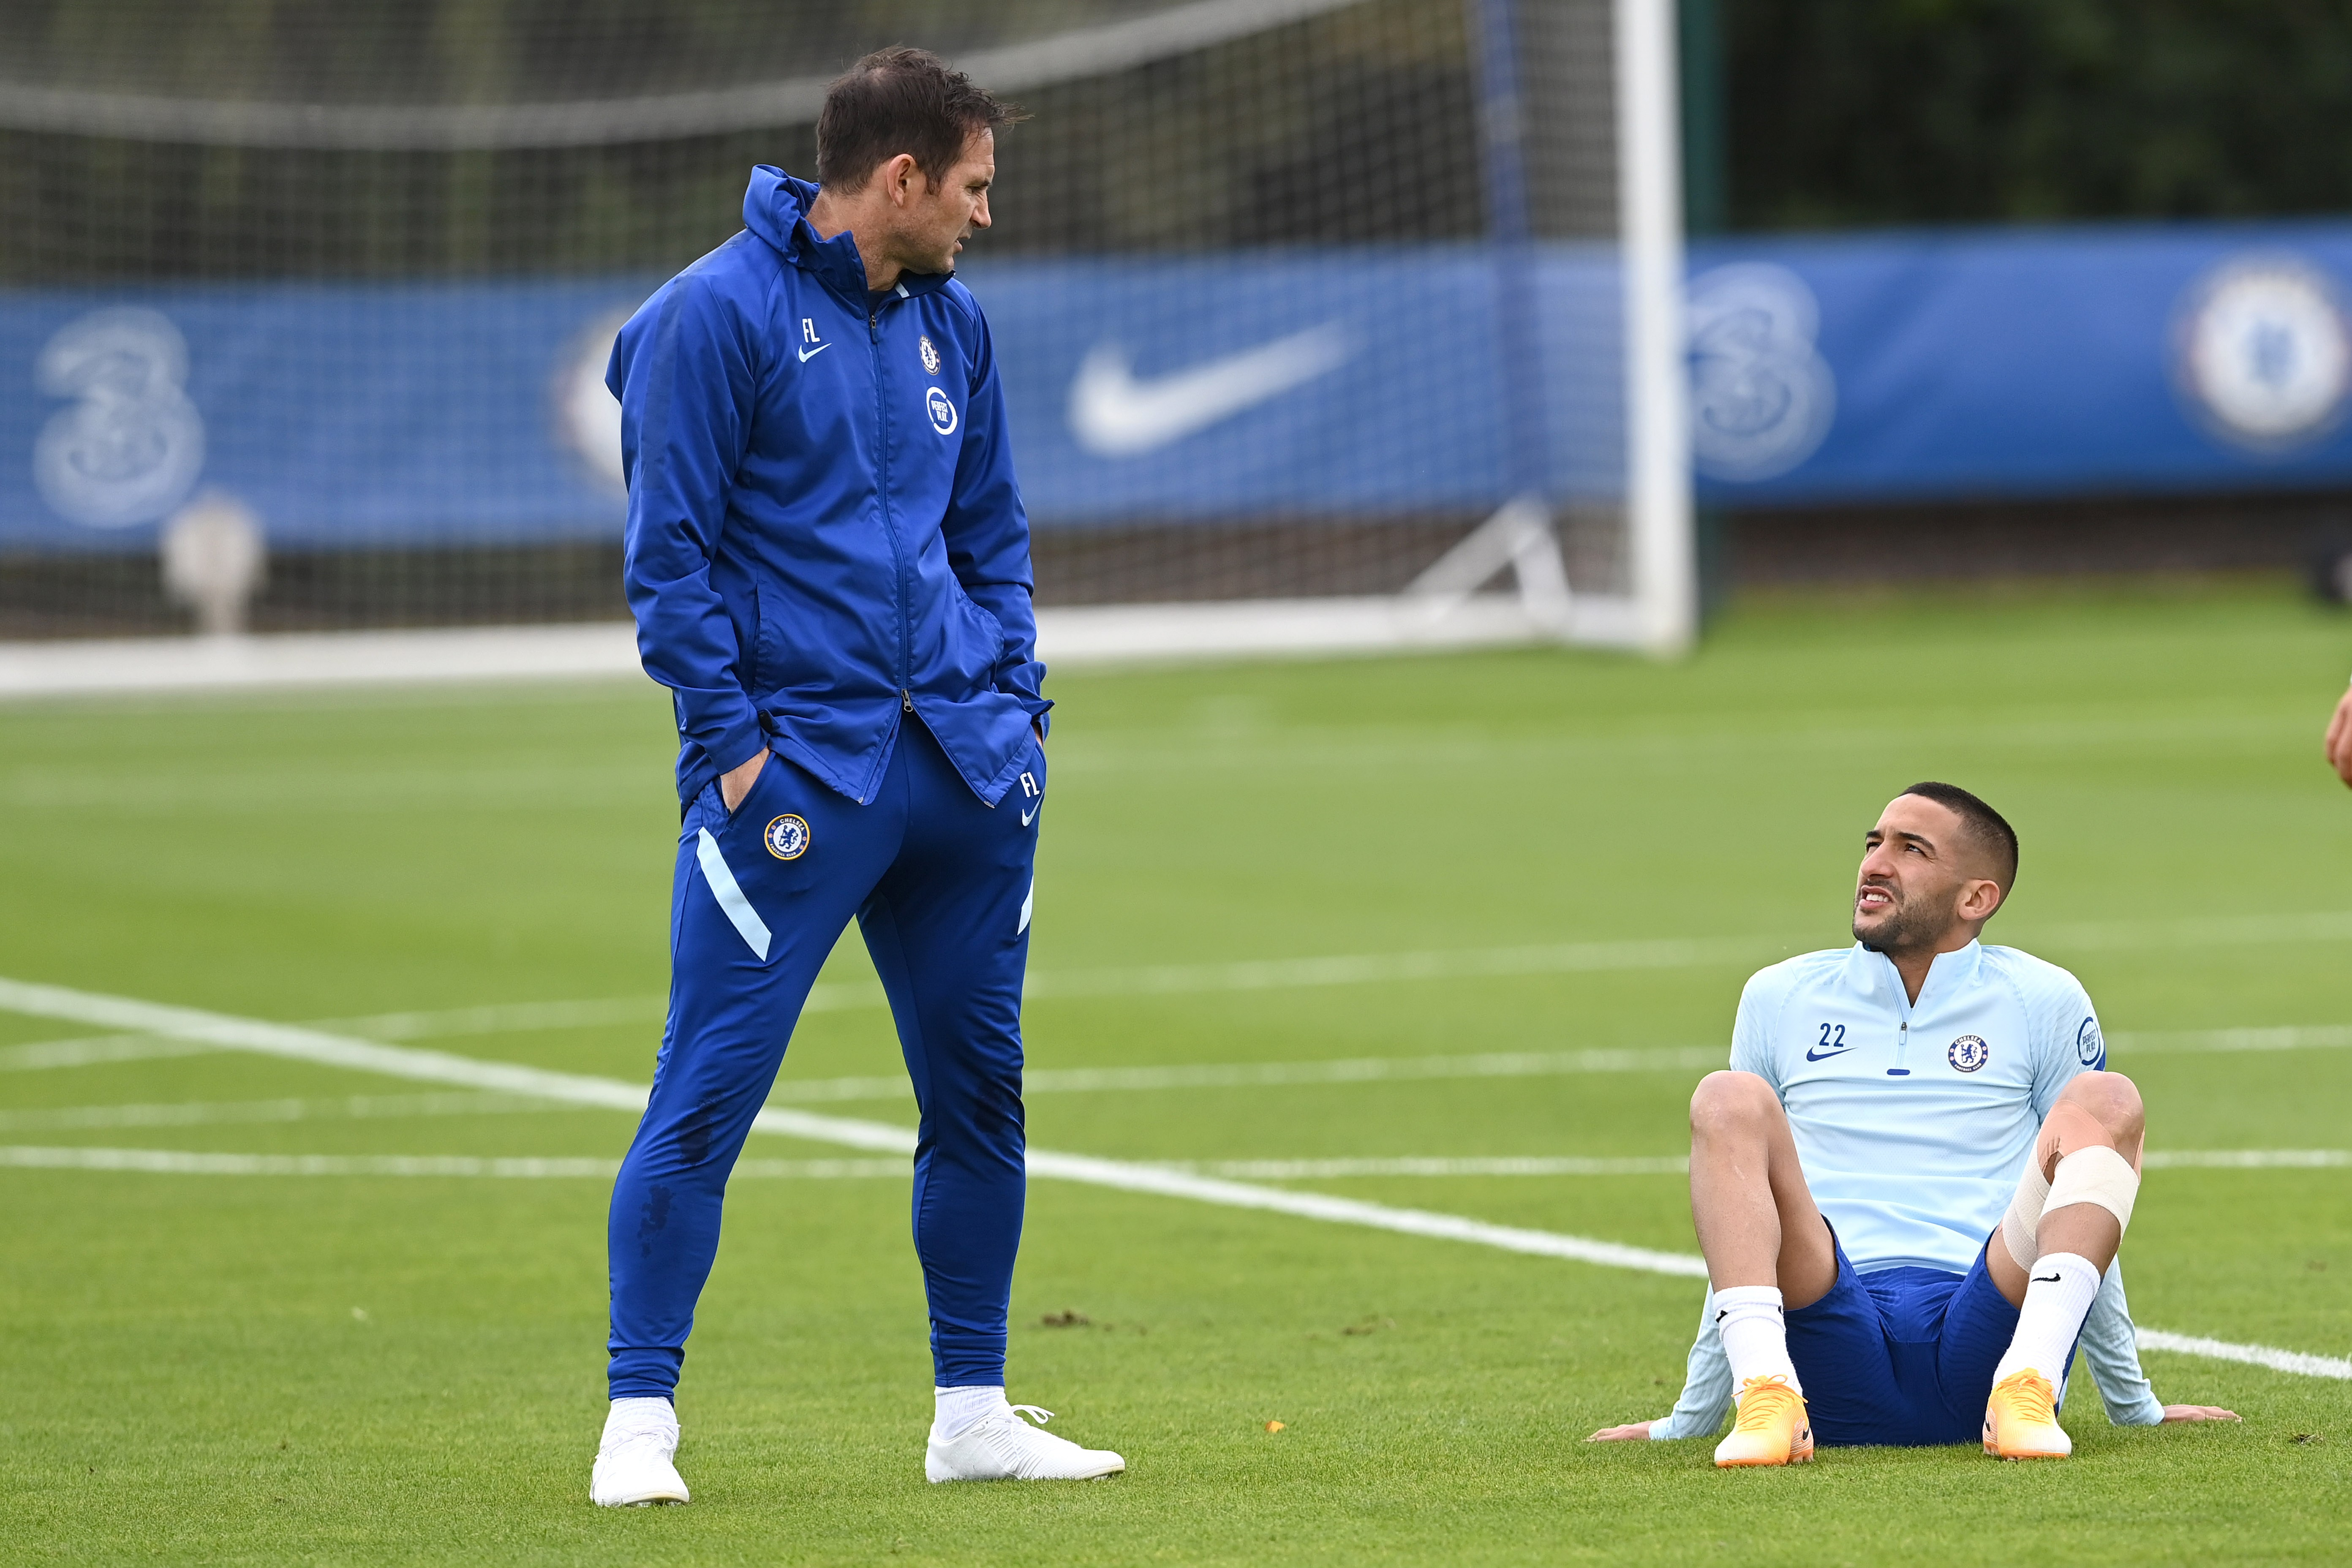 Chelsea boss Frank Lampard reveals what impressed him when he first spoke to Hakim Ziyech